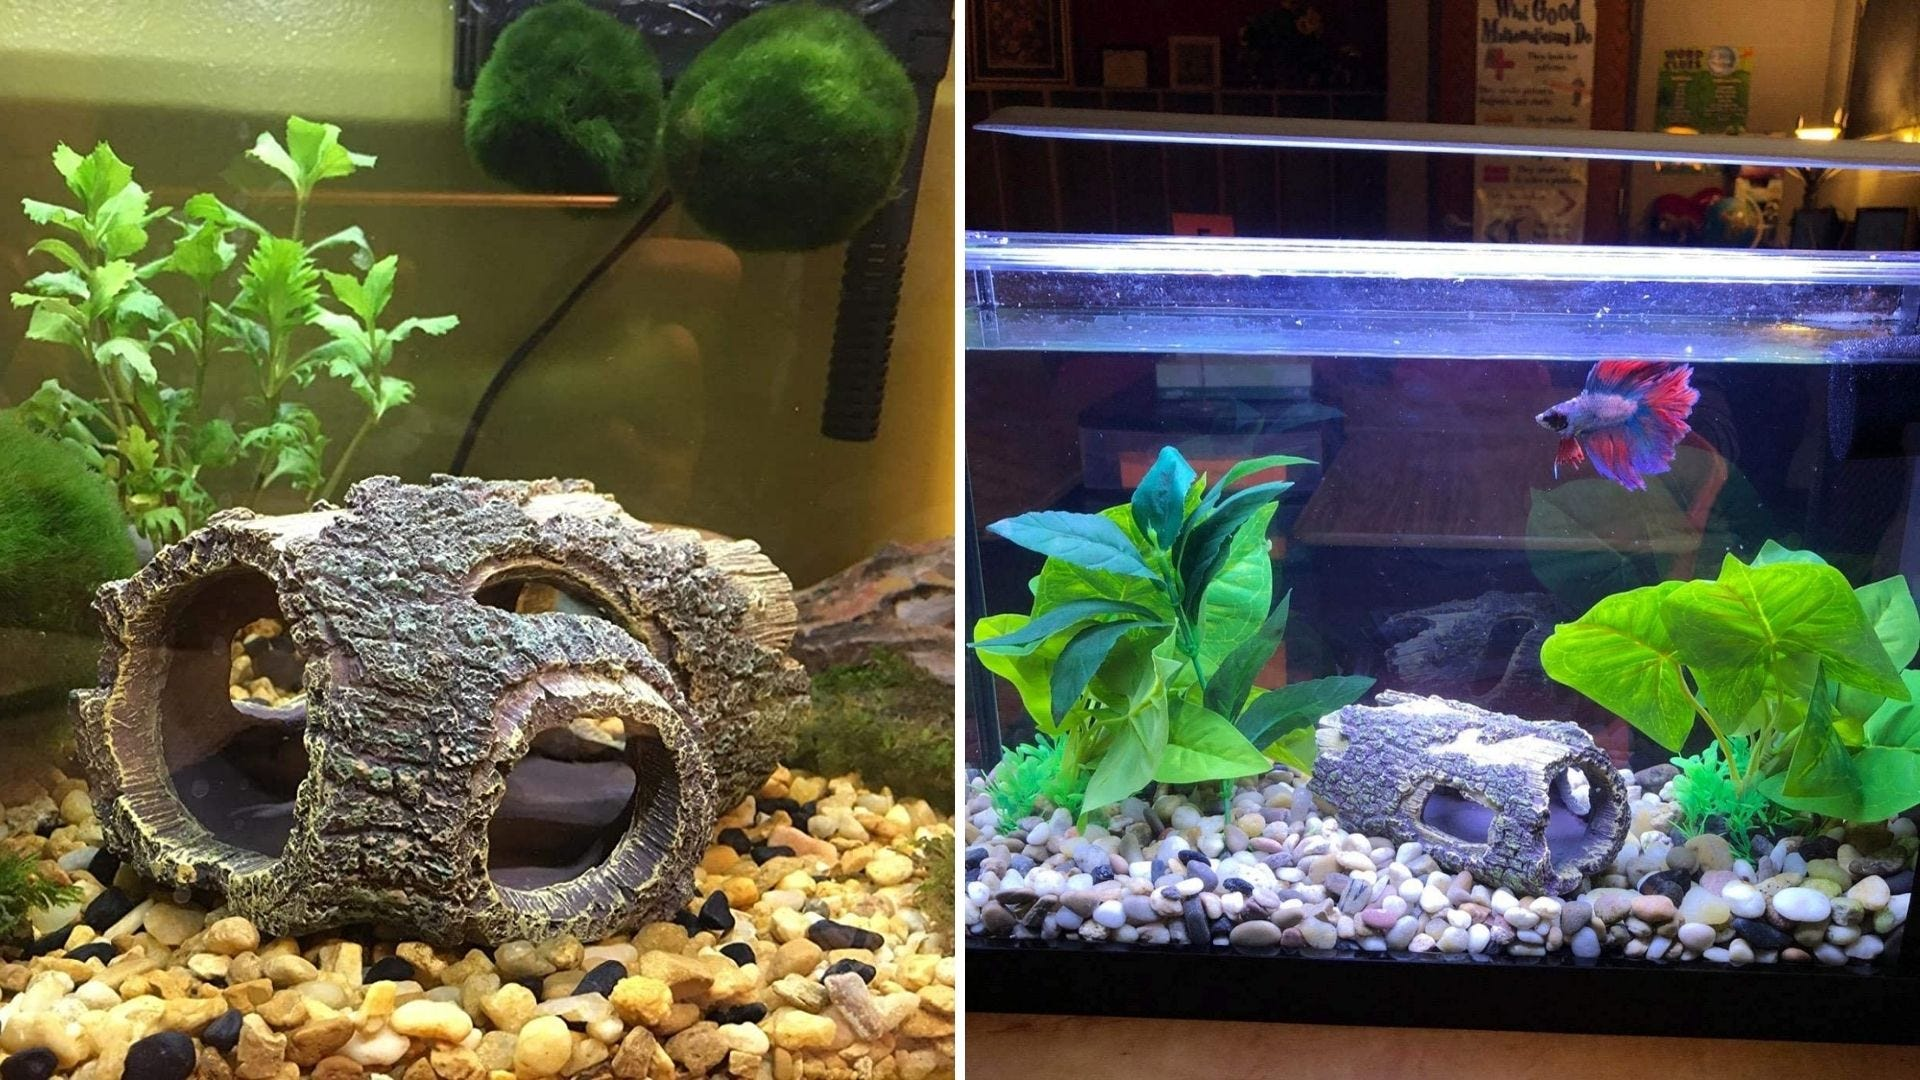 A log is in an aquarium and a fish swims in a tank